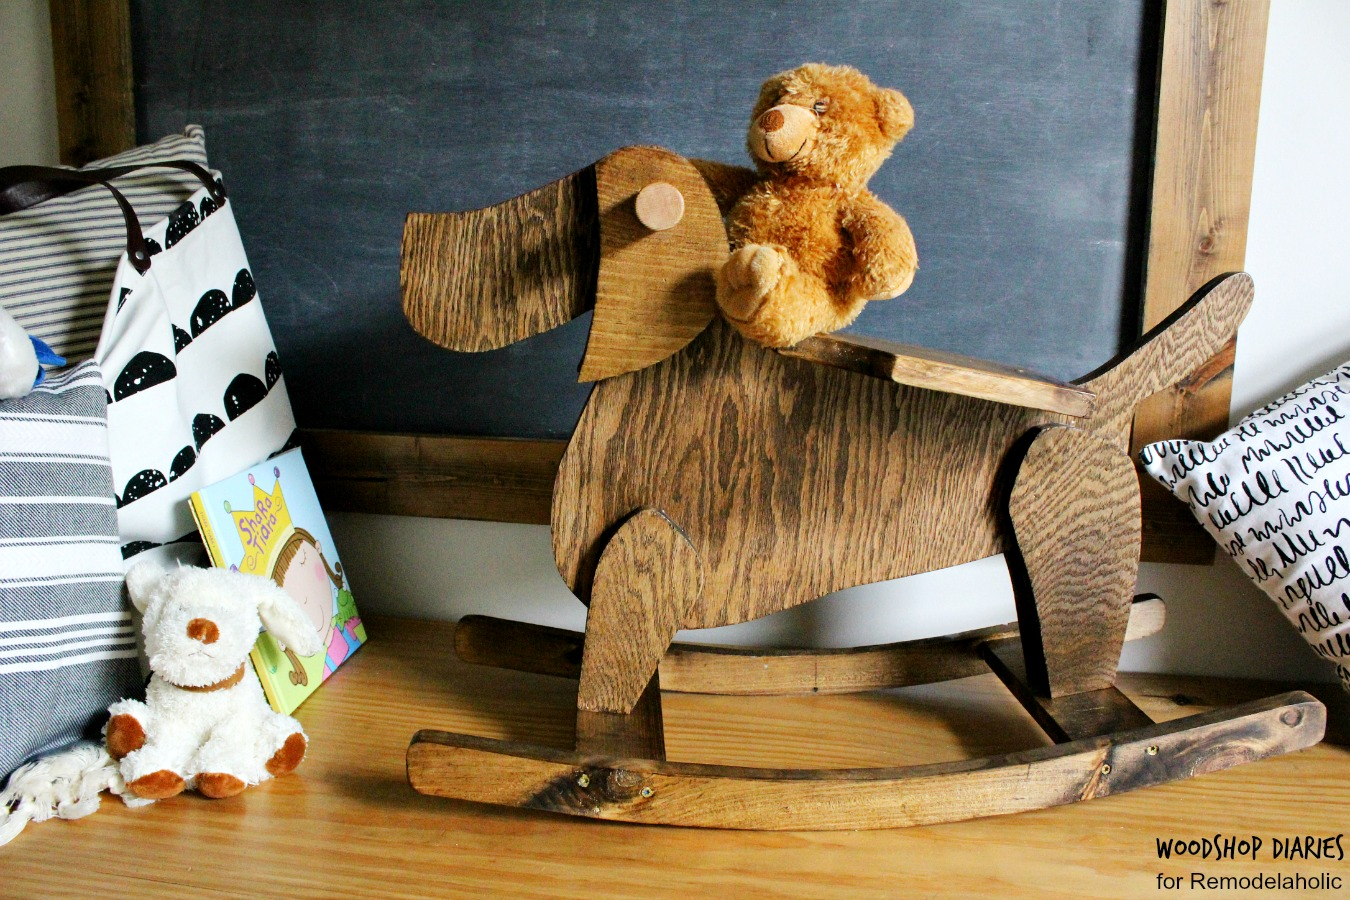 Remodelaholic | A Classic Rocking Horse Twist: DIY Wooden ...